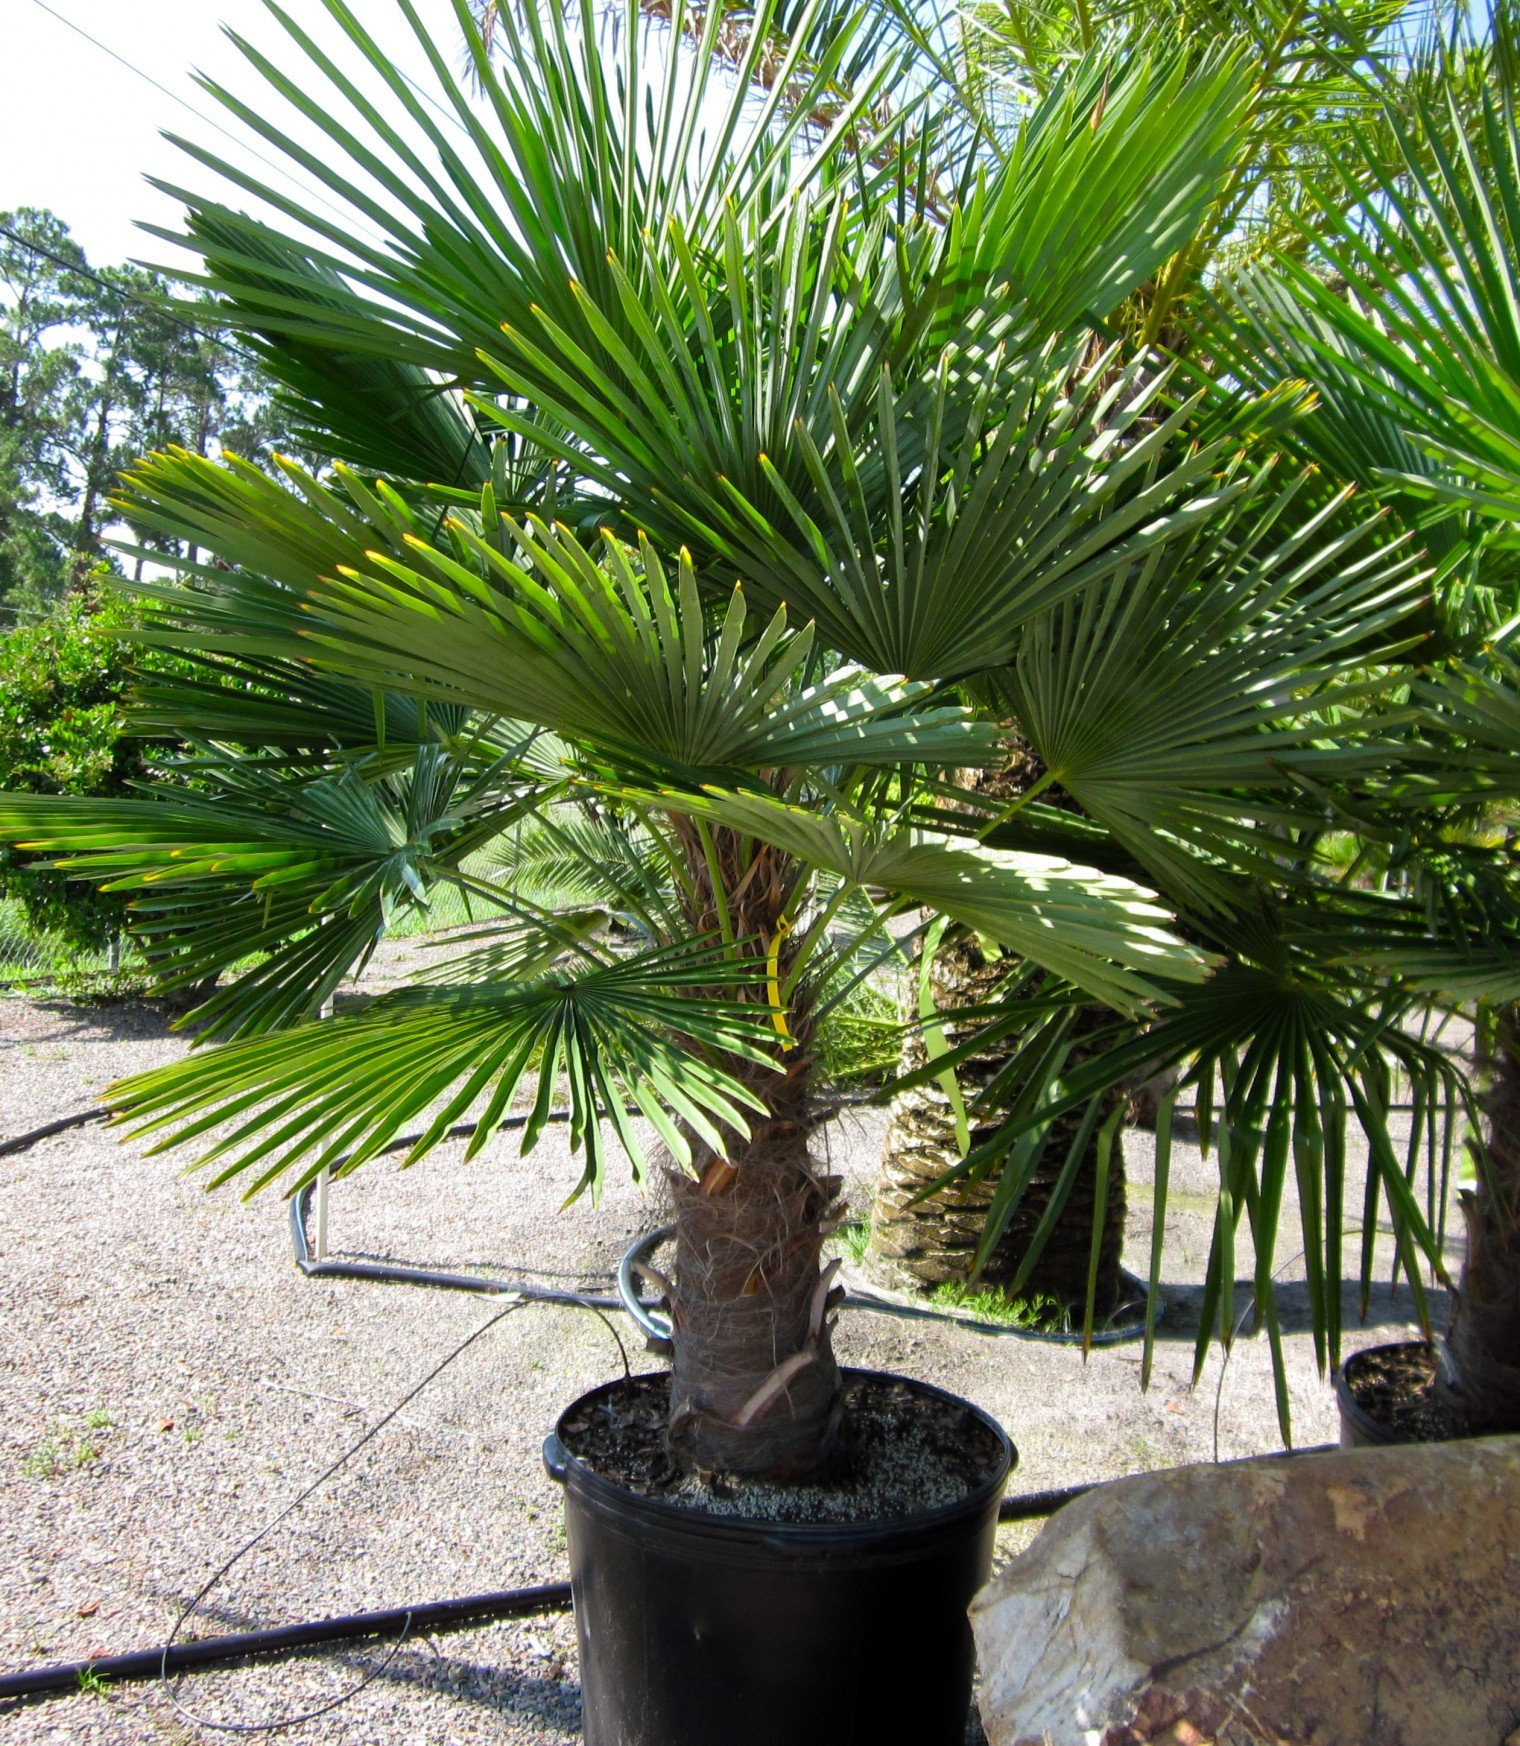 (3 gallon) Windmill Palm Trees- An extremely hardy palm tree with an attractive, compact crown with large, stiff, fan-like, green foliage and distinctive hairy black fibers covering its slender, grace